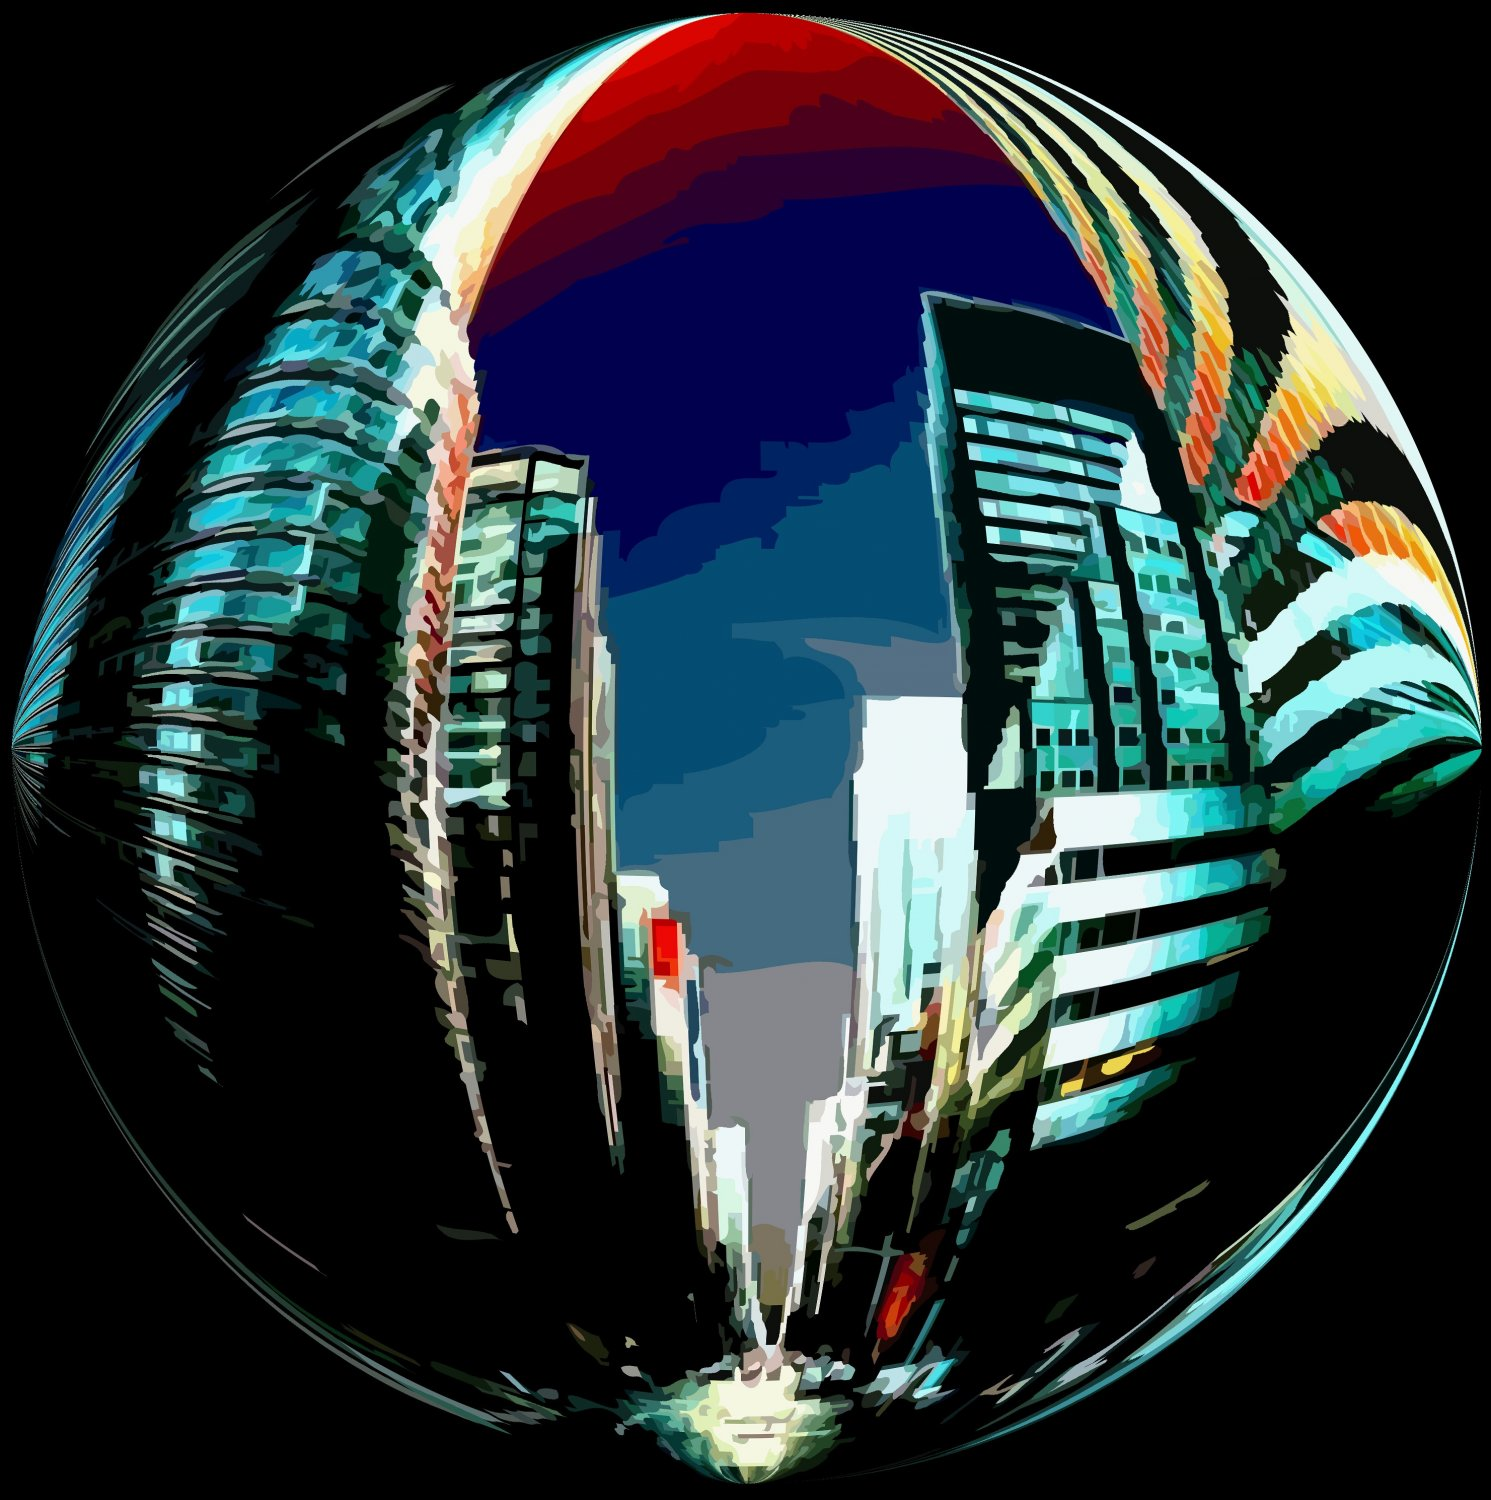 New York City Dream Bubble - The Art of Tony Karp - Techno-Impressionist Museum - Techno-Impressionism - art - beautiful - photo photography picture - by Tony Karp